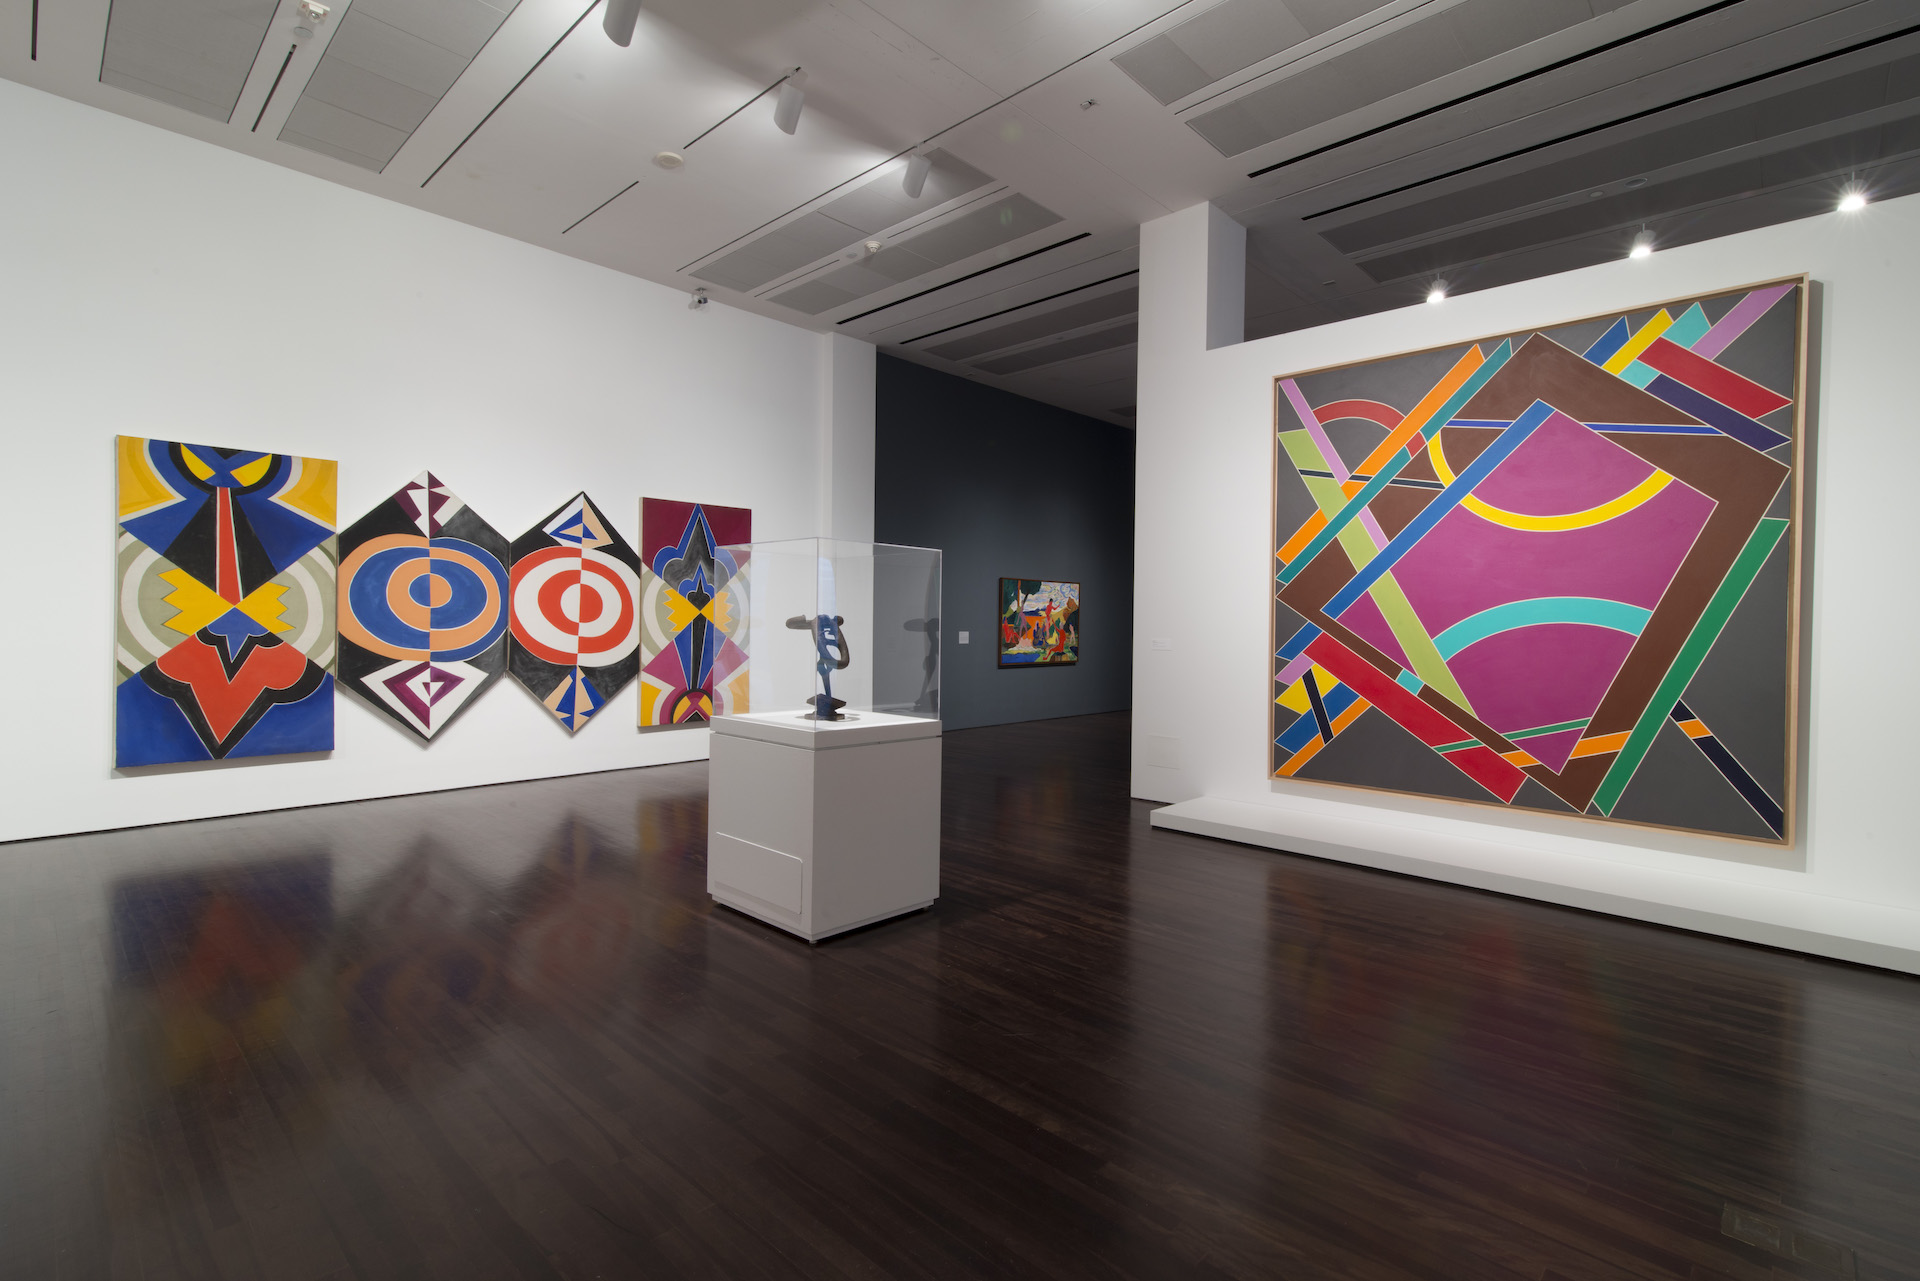 """Installation view of """"Witness: Art and Civil Rights in the Sixties"""" at theBlanton Museum of Art, The University of Texas at Austin. Artwork featured use vibrant colors and linework."""